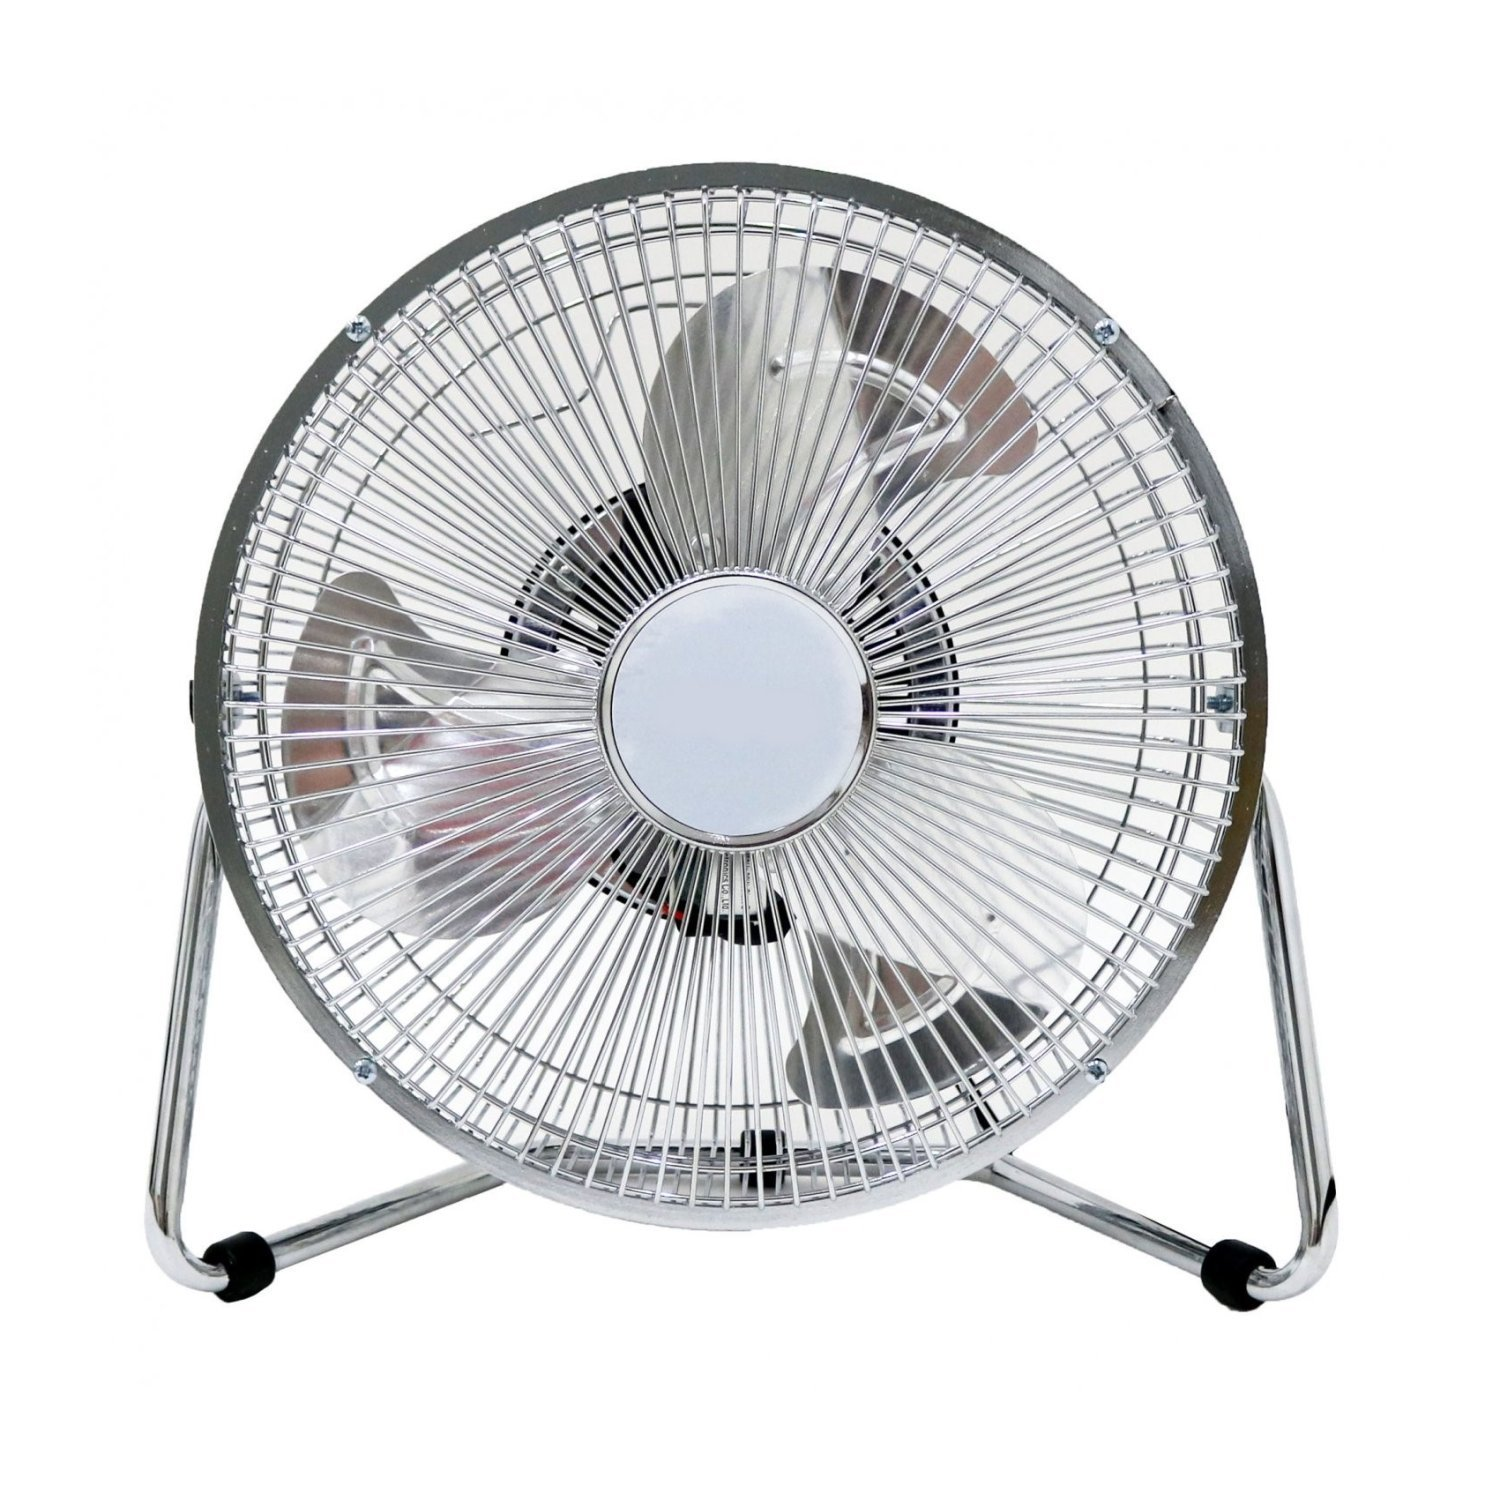 New 14 chrome high velocity industrial 3 speed free for 14 inch chrome floor standing fan